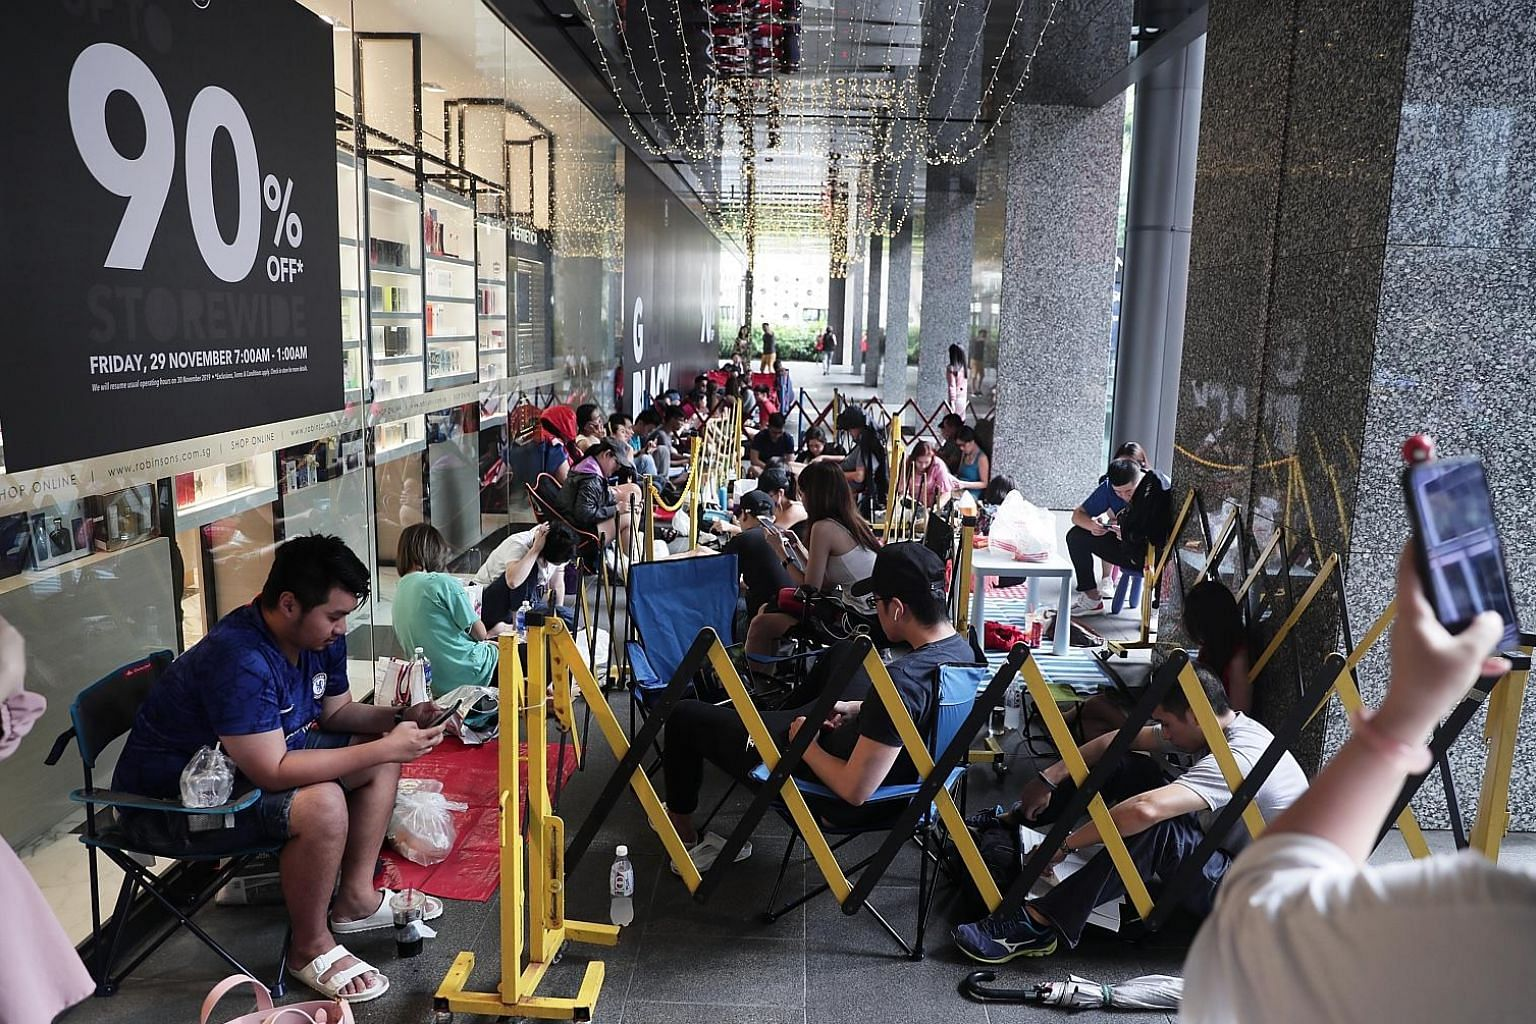 Around 50 people had parked themselves outside Robinsons The Heeren by 4pm yesterday to be among the first in line when the store's doors open at 7am today for its annual Black Friday sale, called The Great Blackout. The bargain hunters came armed wi